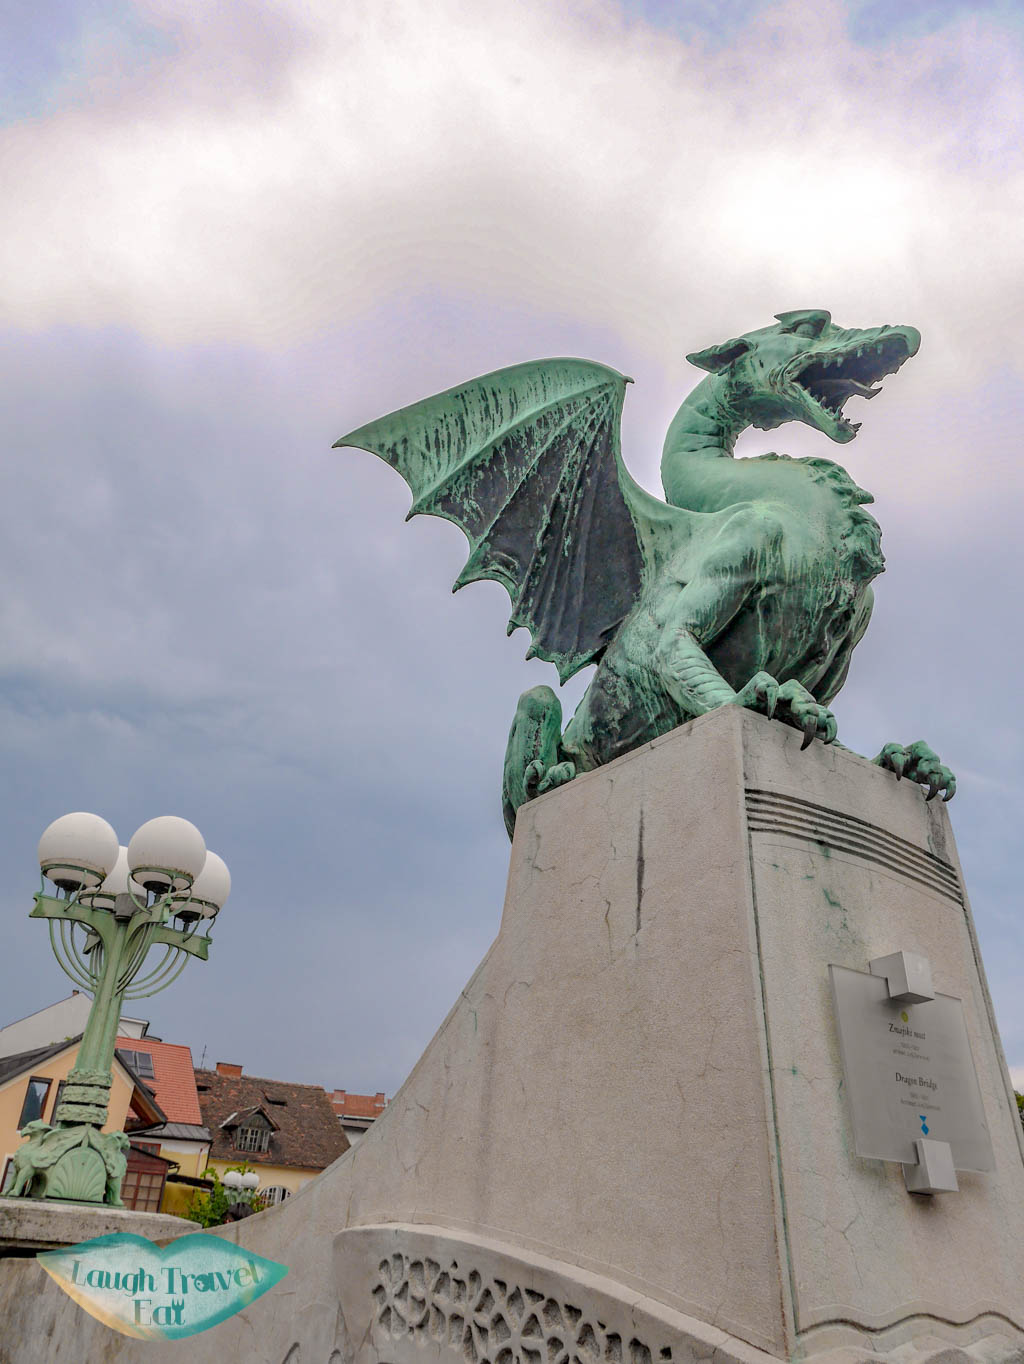 dragons-bridge-Ljubljana-Slovenia-laugh-travel-eat